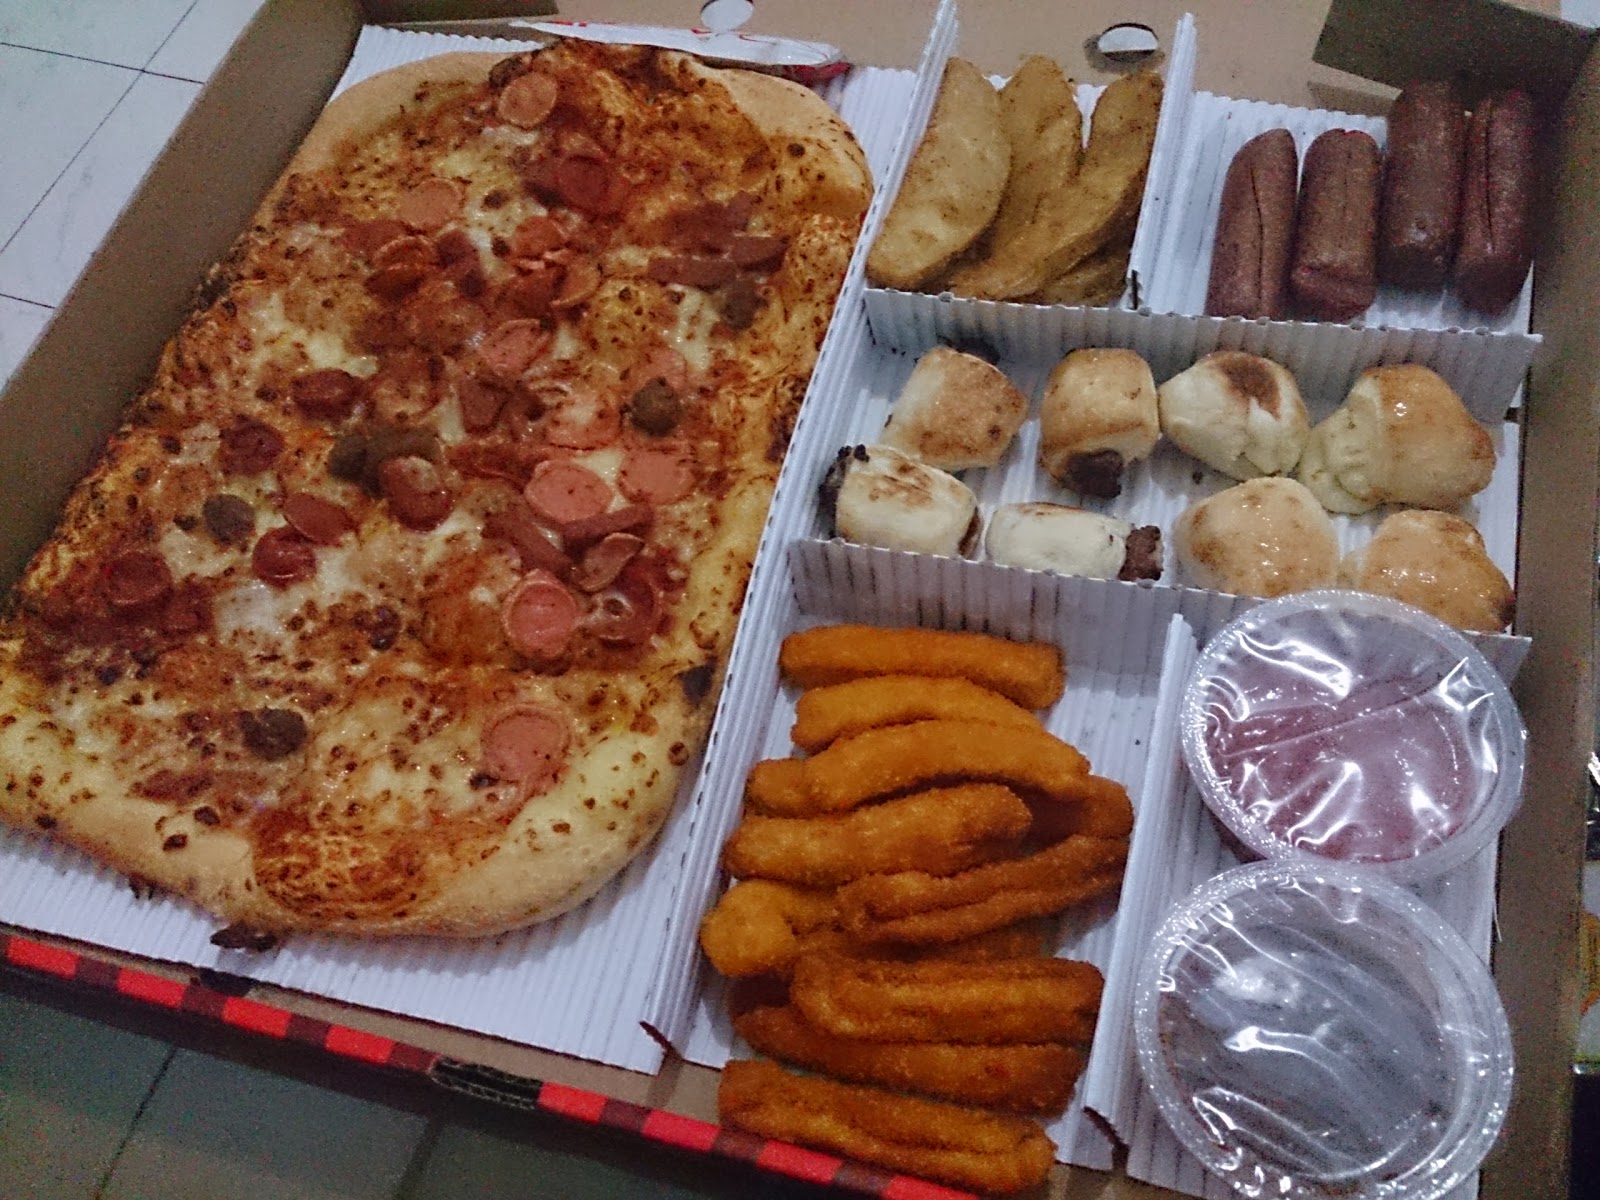 Product availability, combinability of discounts and specials, prices, participation, delivery areas and charges, and minimum purchase required for delivery may vary. Discounts are not applicable to tax, delivery charge, or driver tip. Availability of WingStreet® products and flavors varies by Pizza Hut.